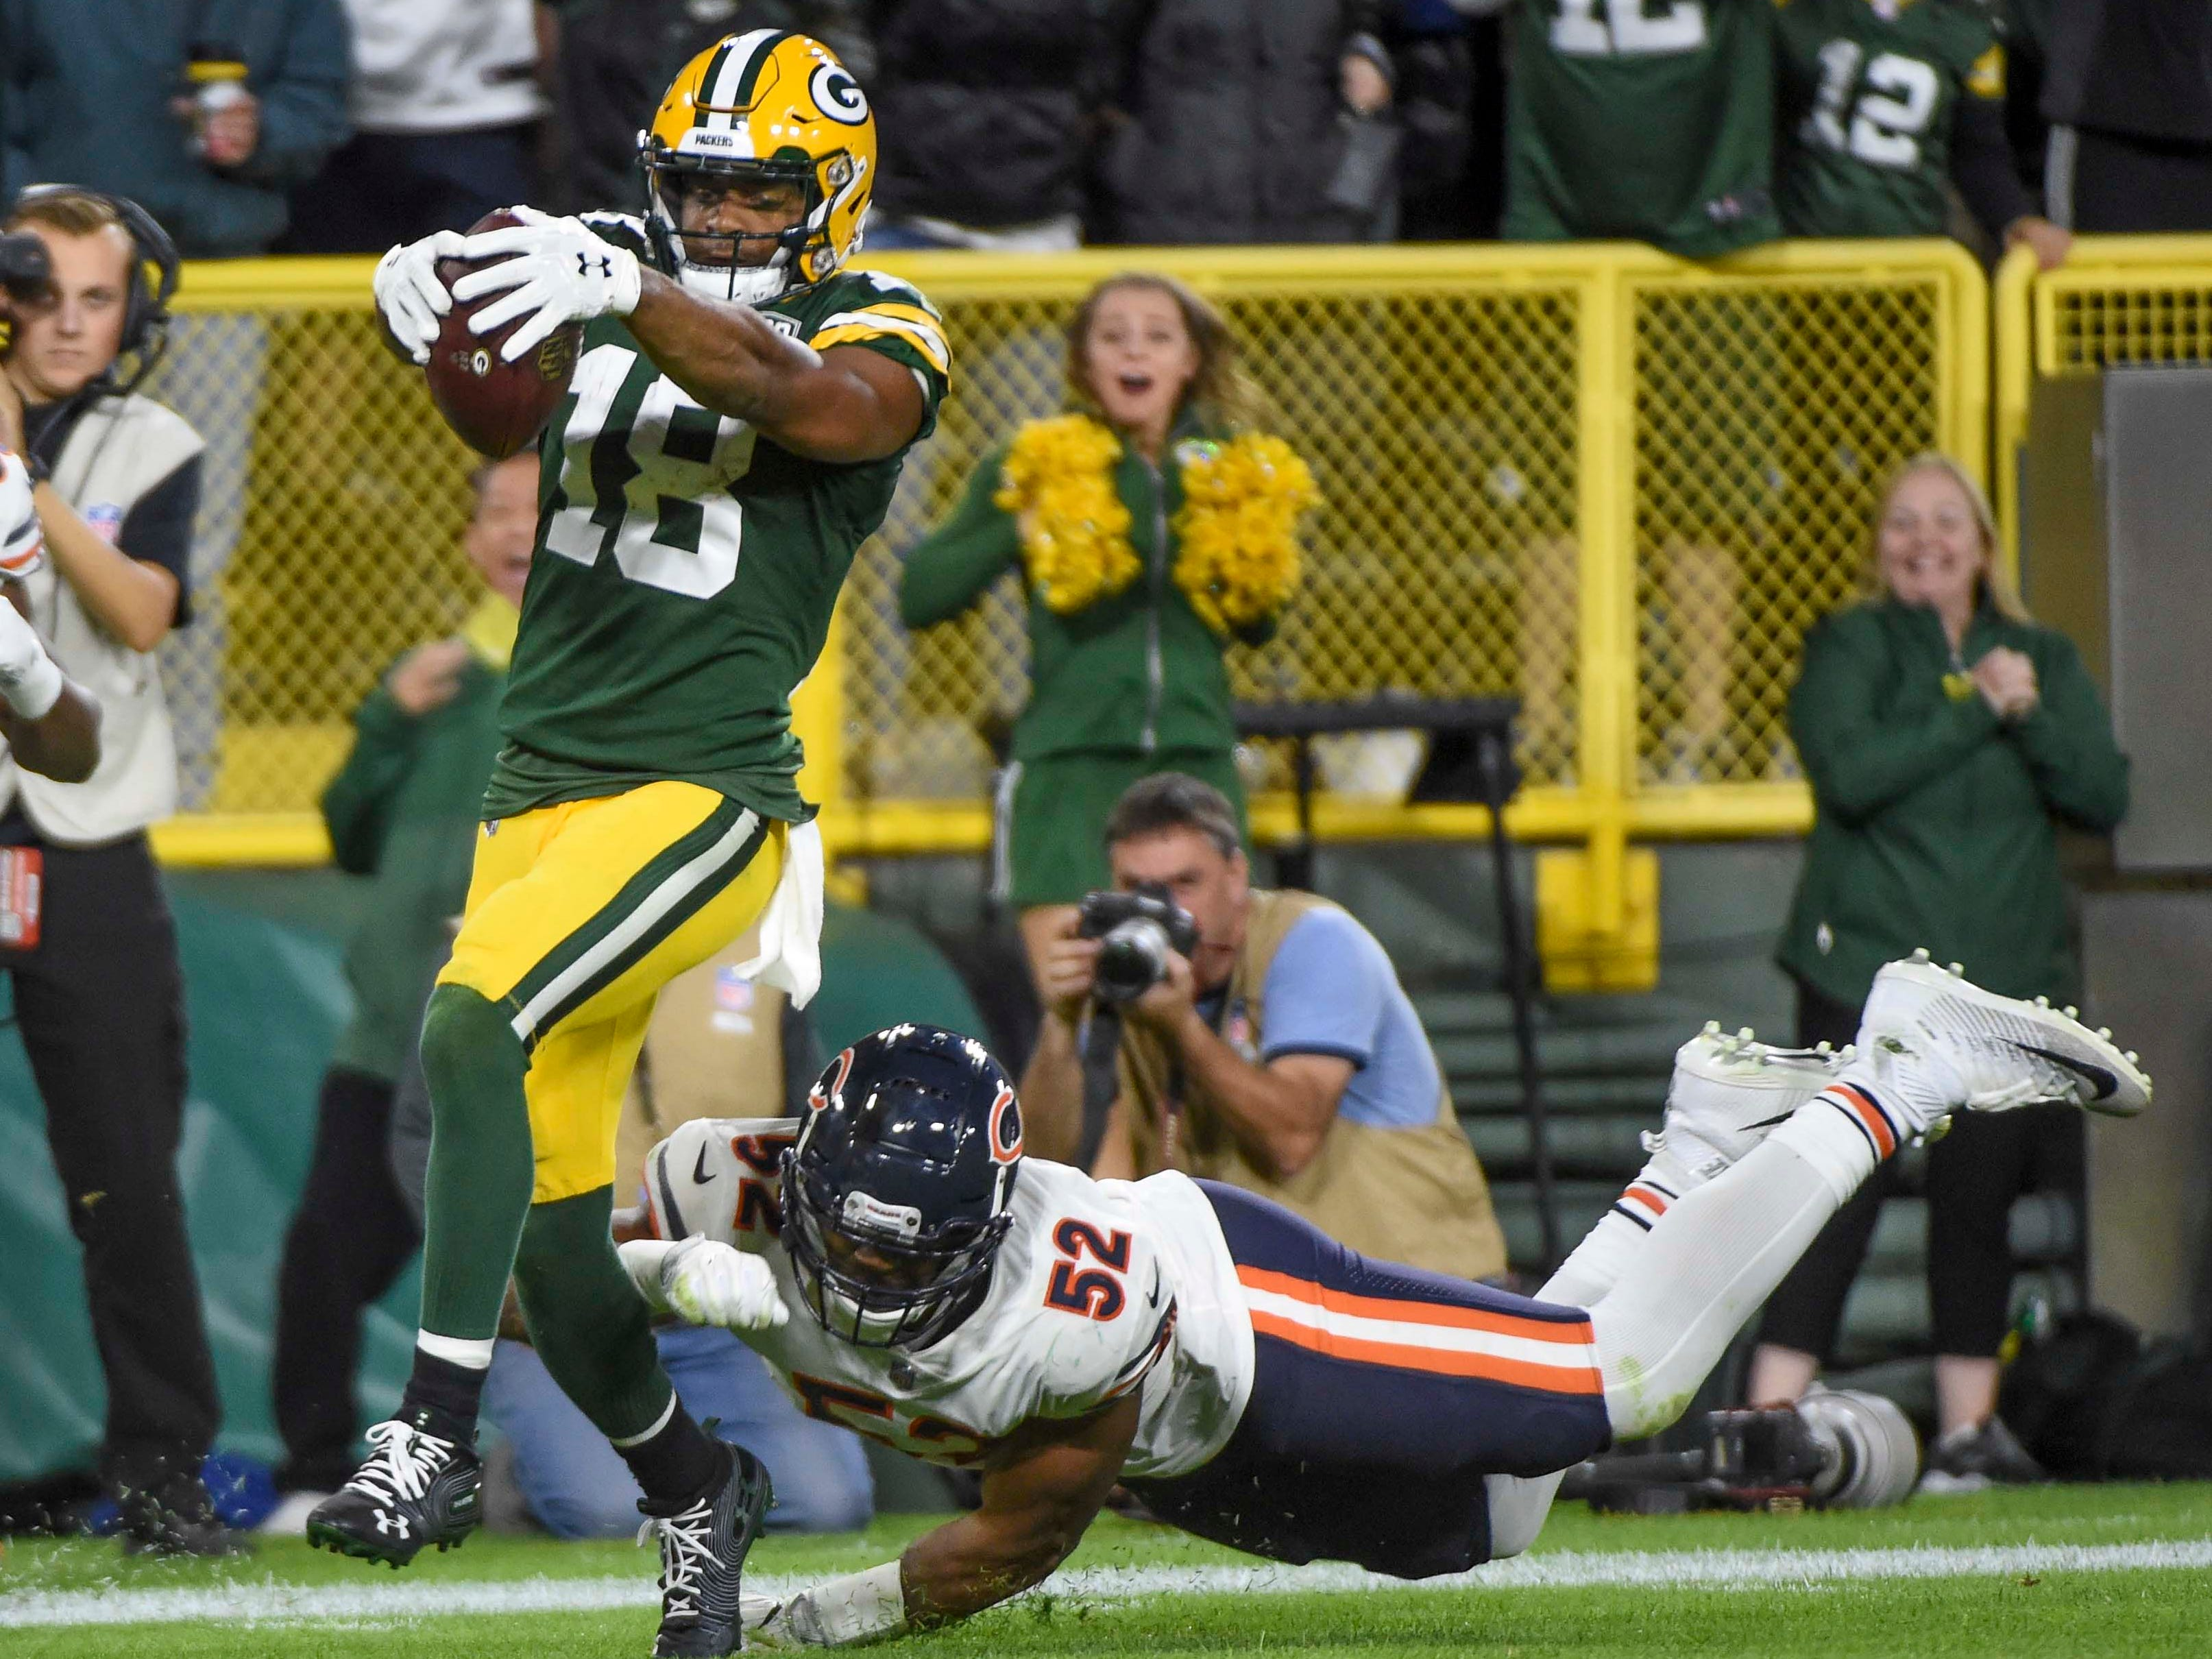 Green Bay Packers wide receiver Randall Cobb gets past Chicago Bears linebacker Khalil Mack to score the winning touchdown in the fourth quarter at Lambeau Field.